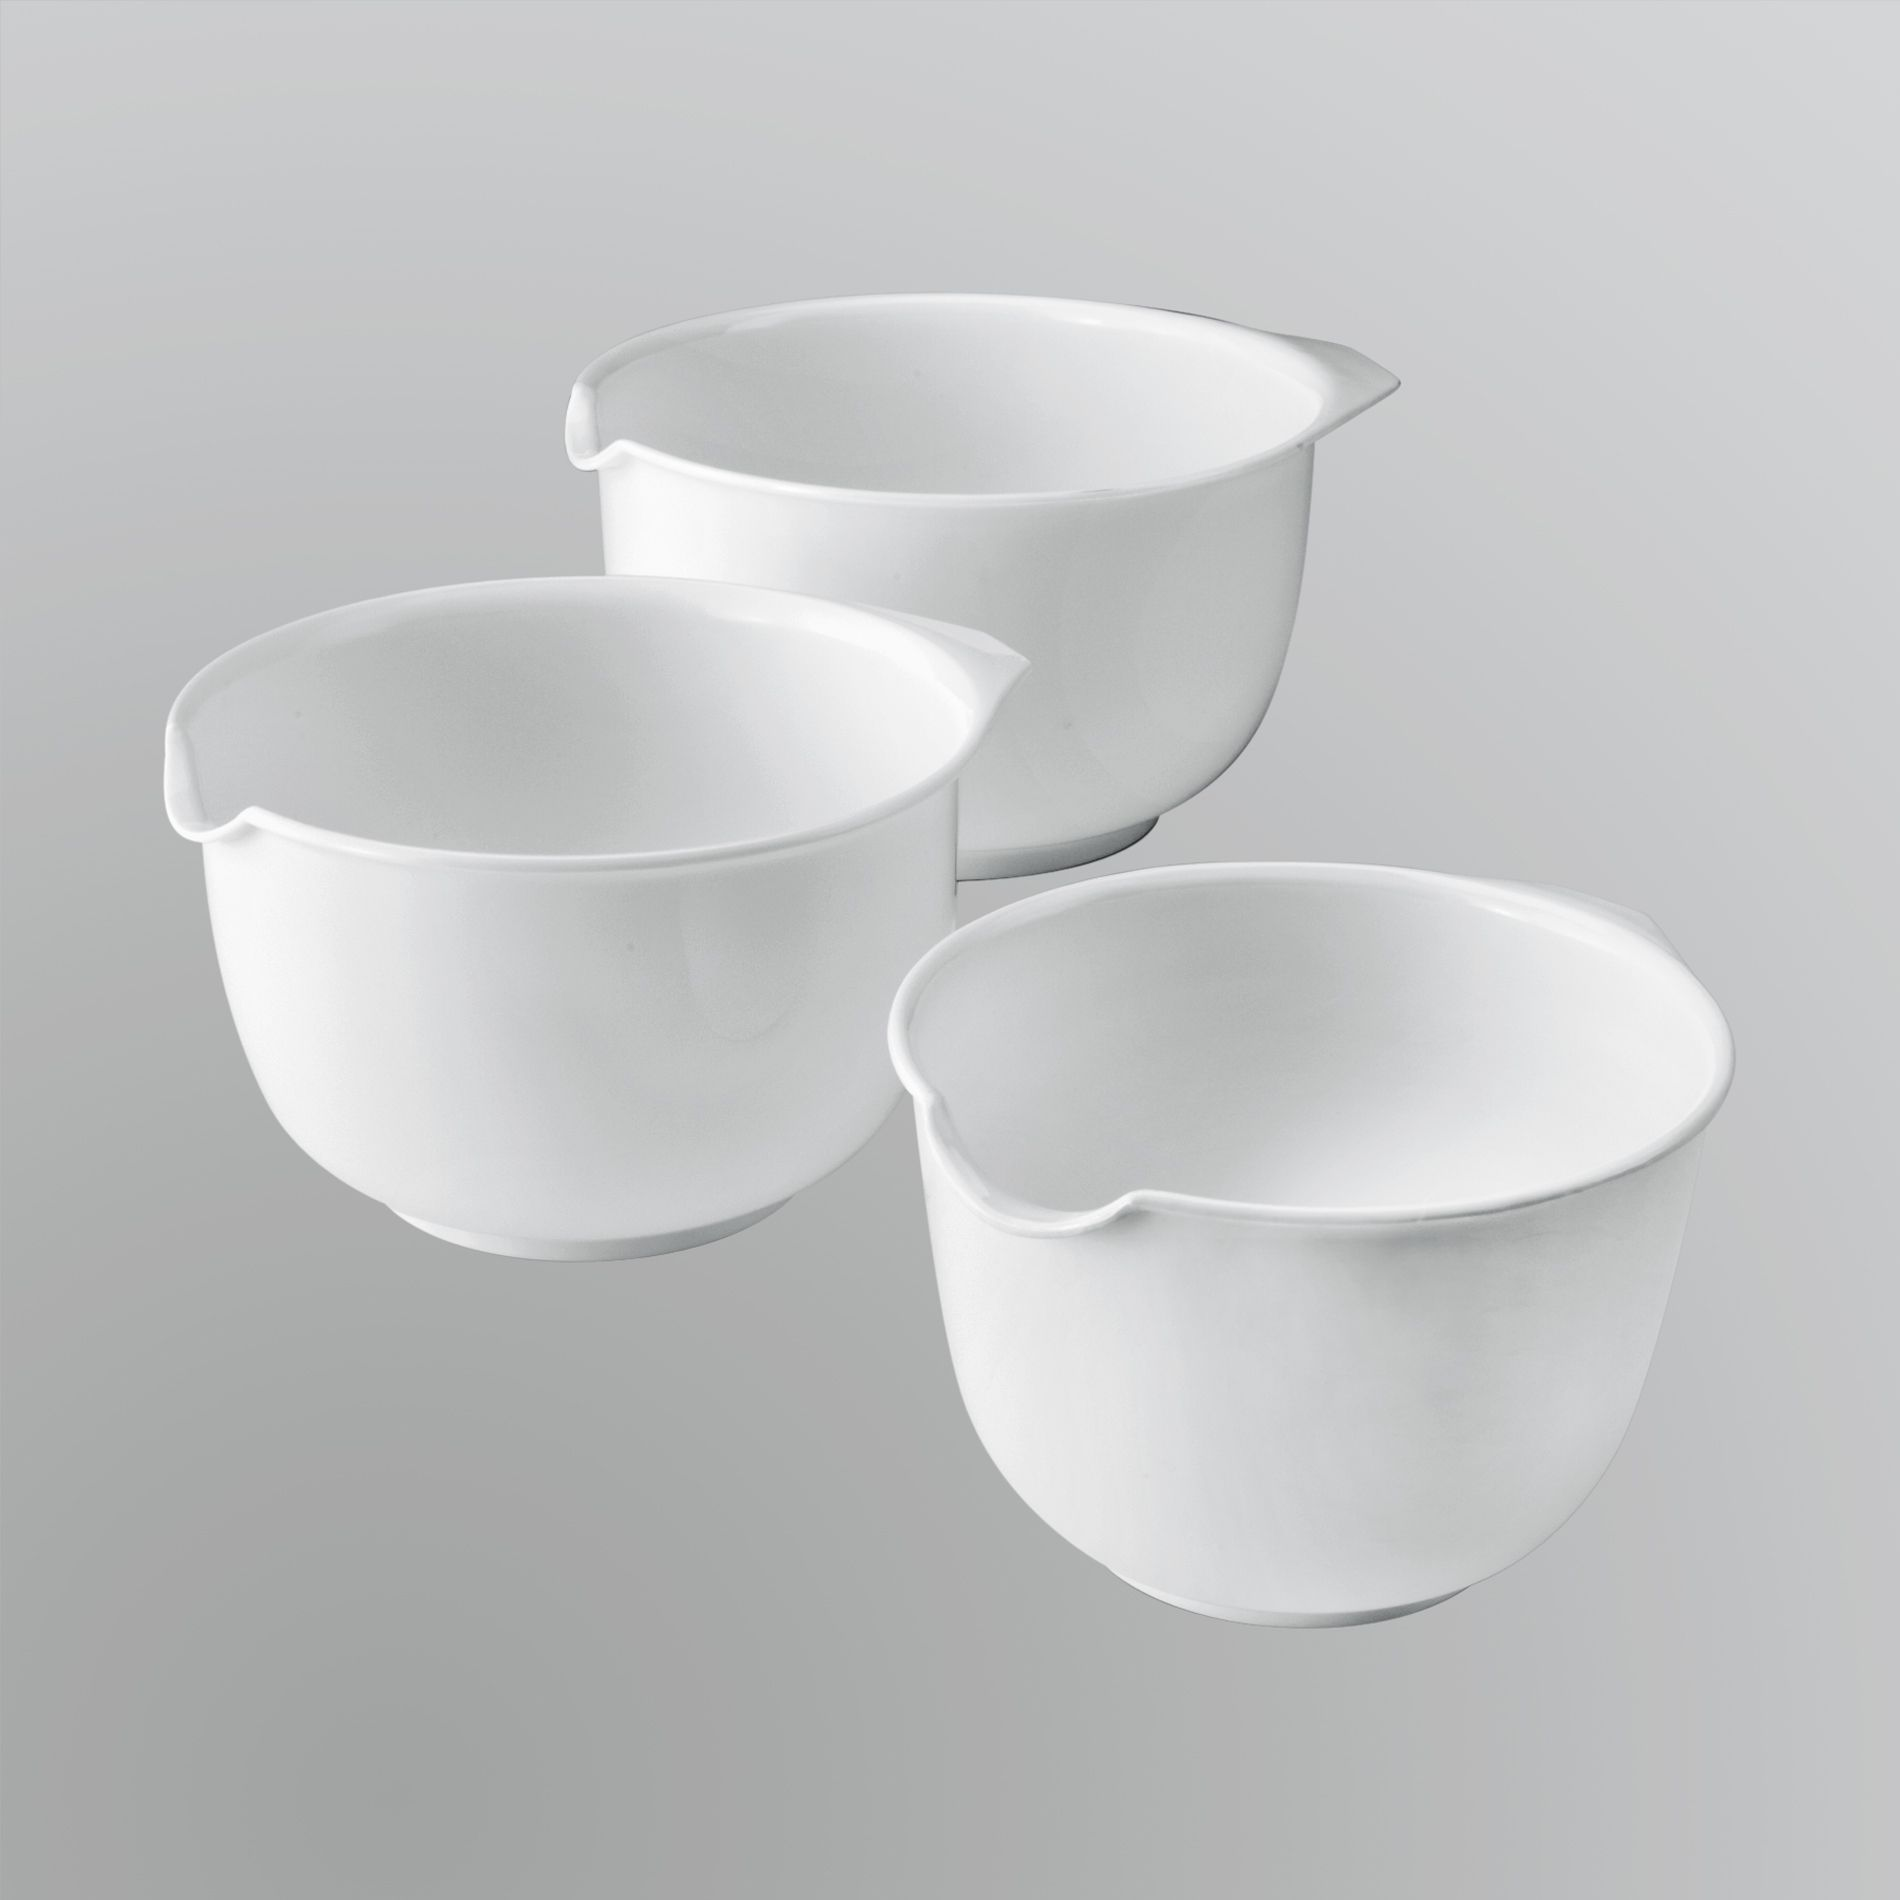 Microwave Safe Bowls Microwave Safe Mixing Bowls Home Design Ideas